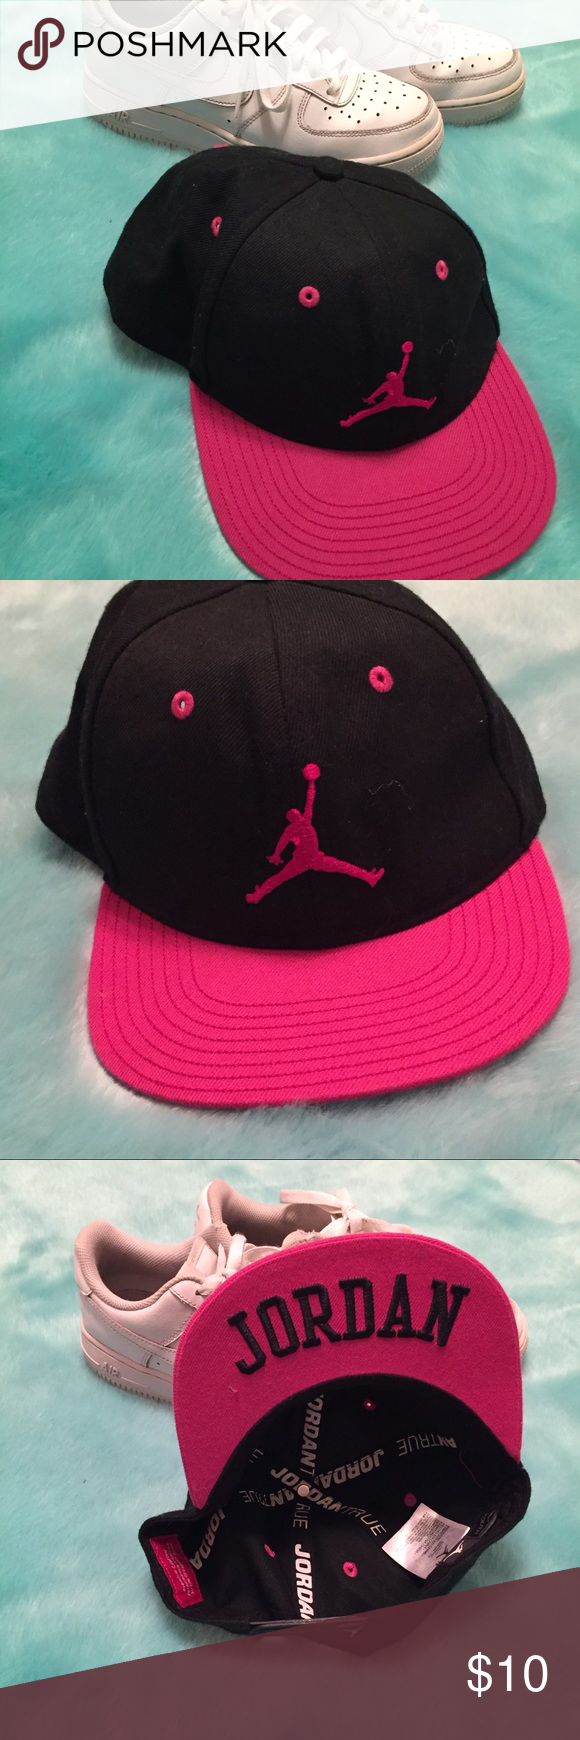 Air Jordan hat Black air Jordan baseball hat with a pink bill. Looks clean.  Youth size but I m 5 1 110 and it fits nice as a women s small. 01c90d74d